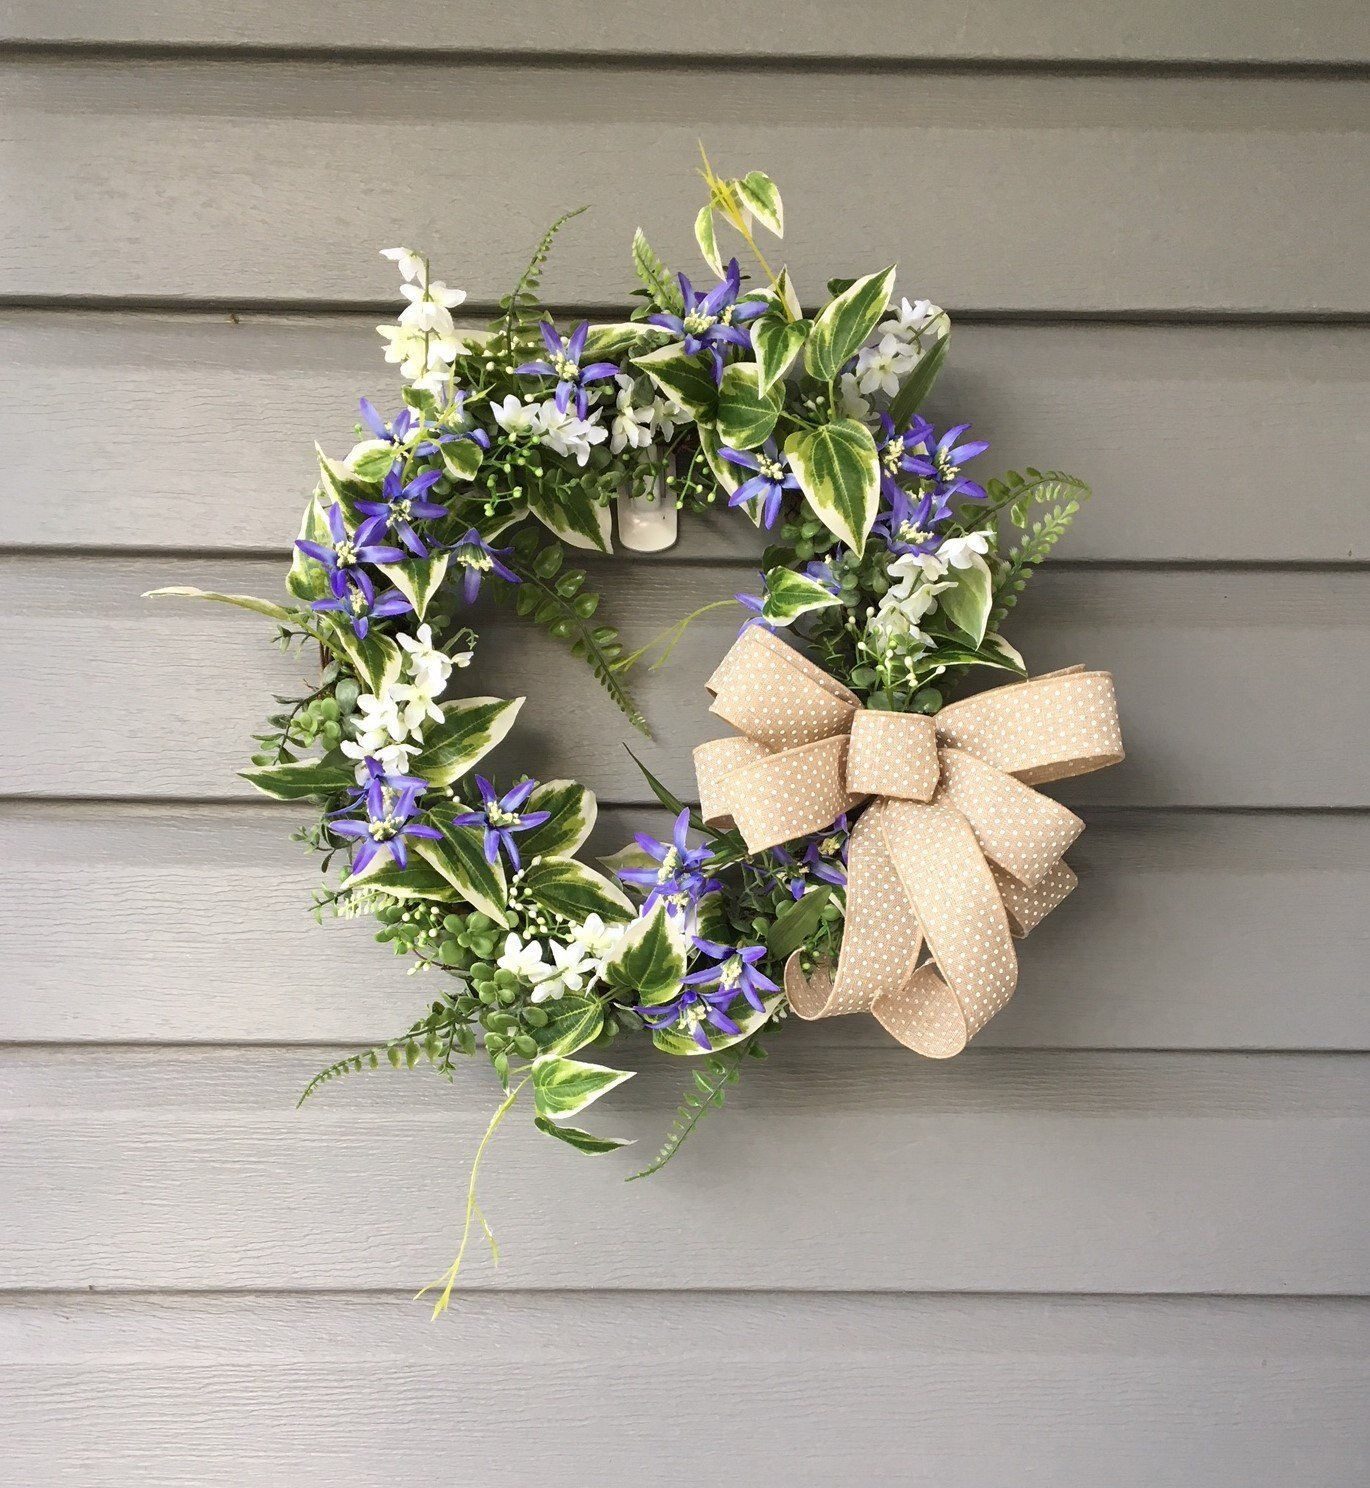 Summer Wreath For Front Door, Year Round Wreath, Small Wreath,